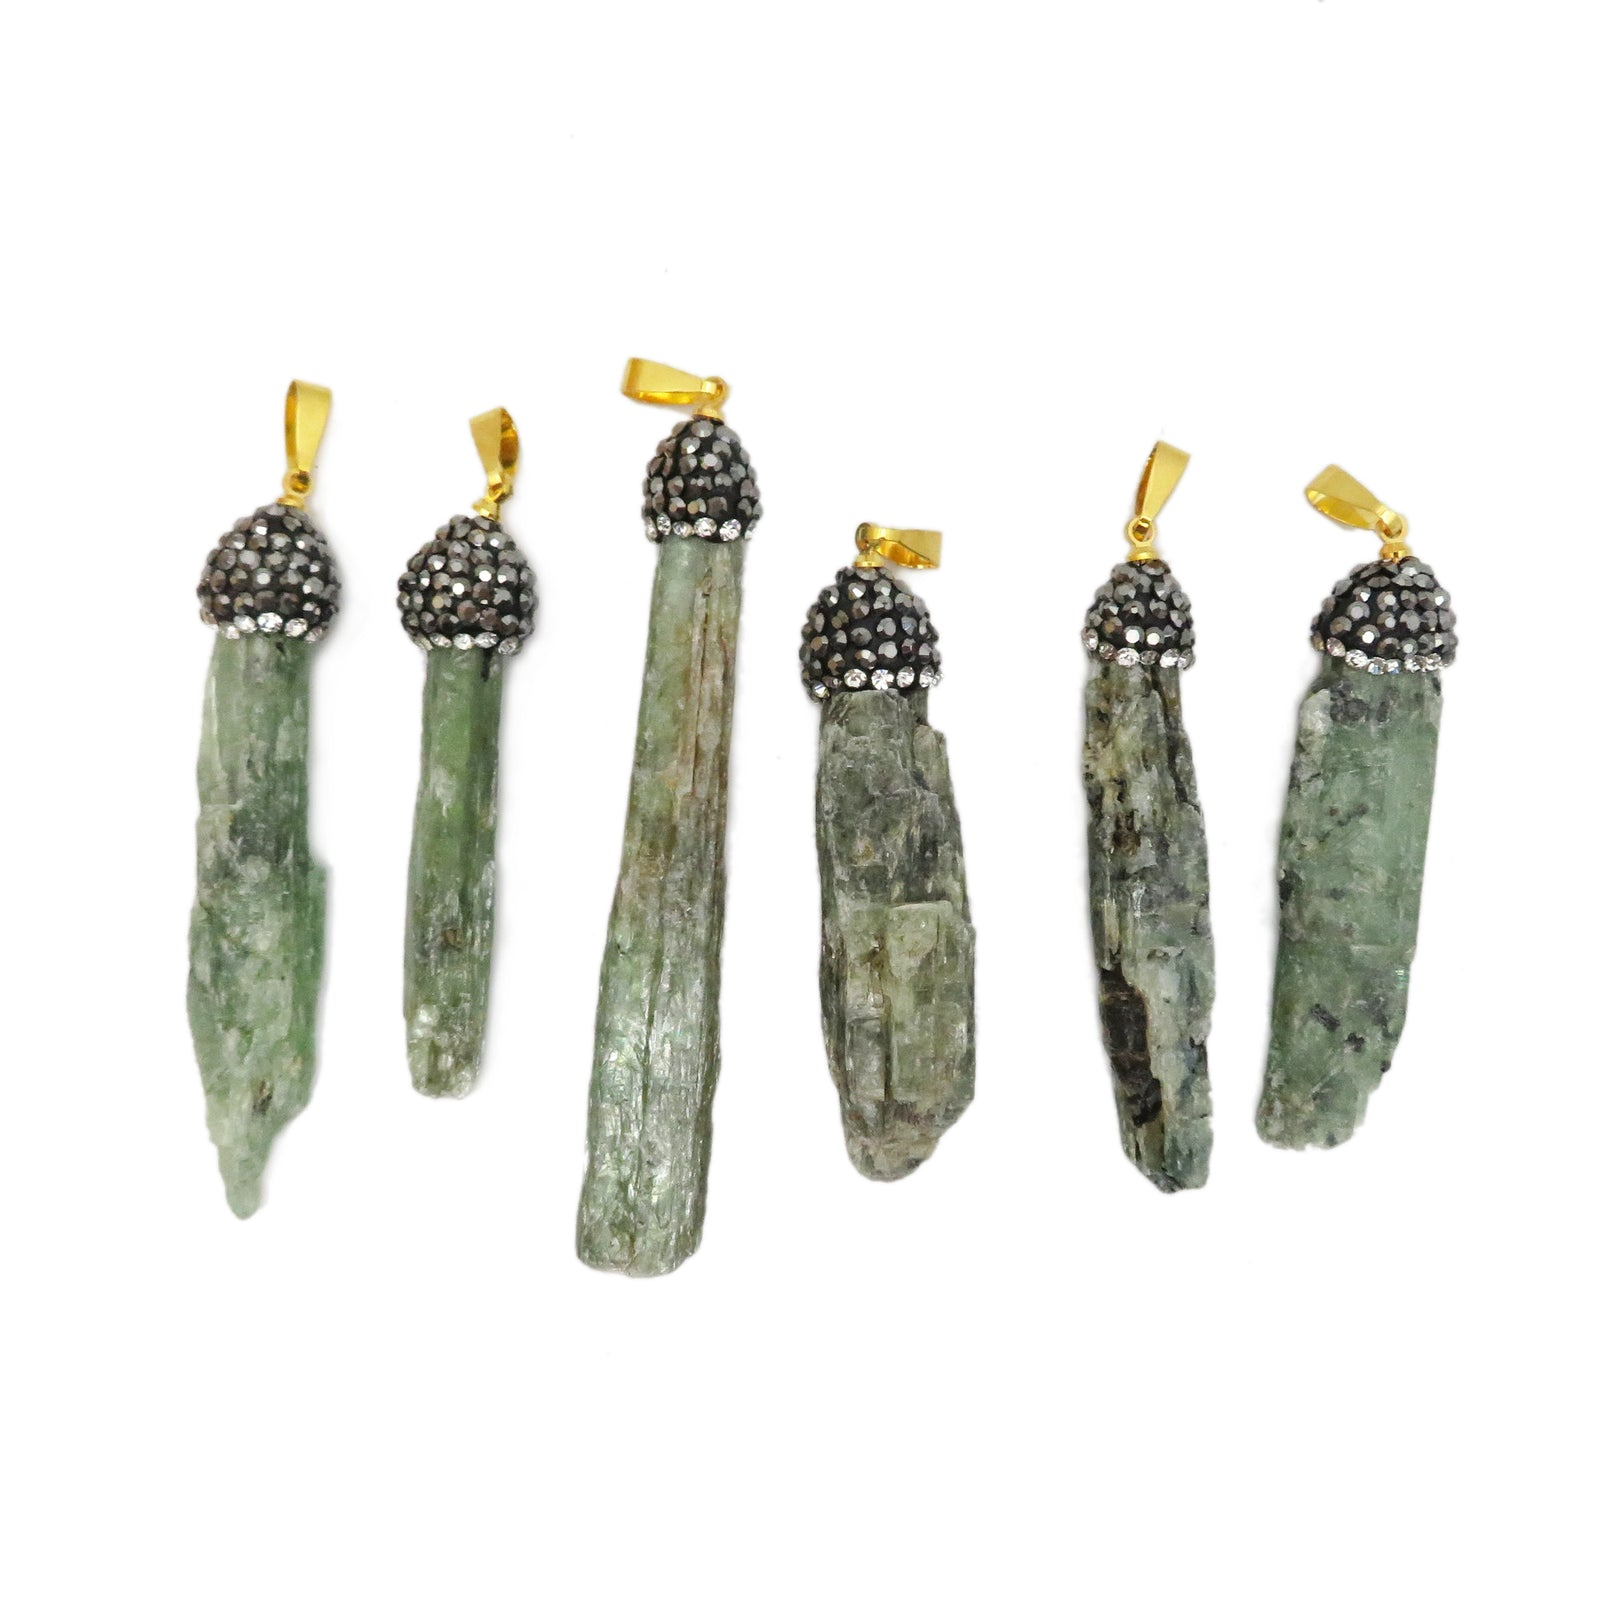 Green Kyanite Pendant (S51B21-01)